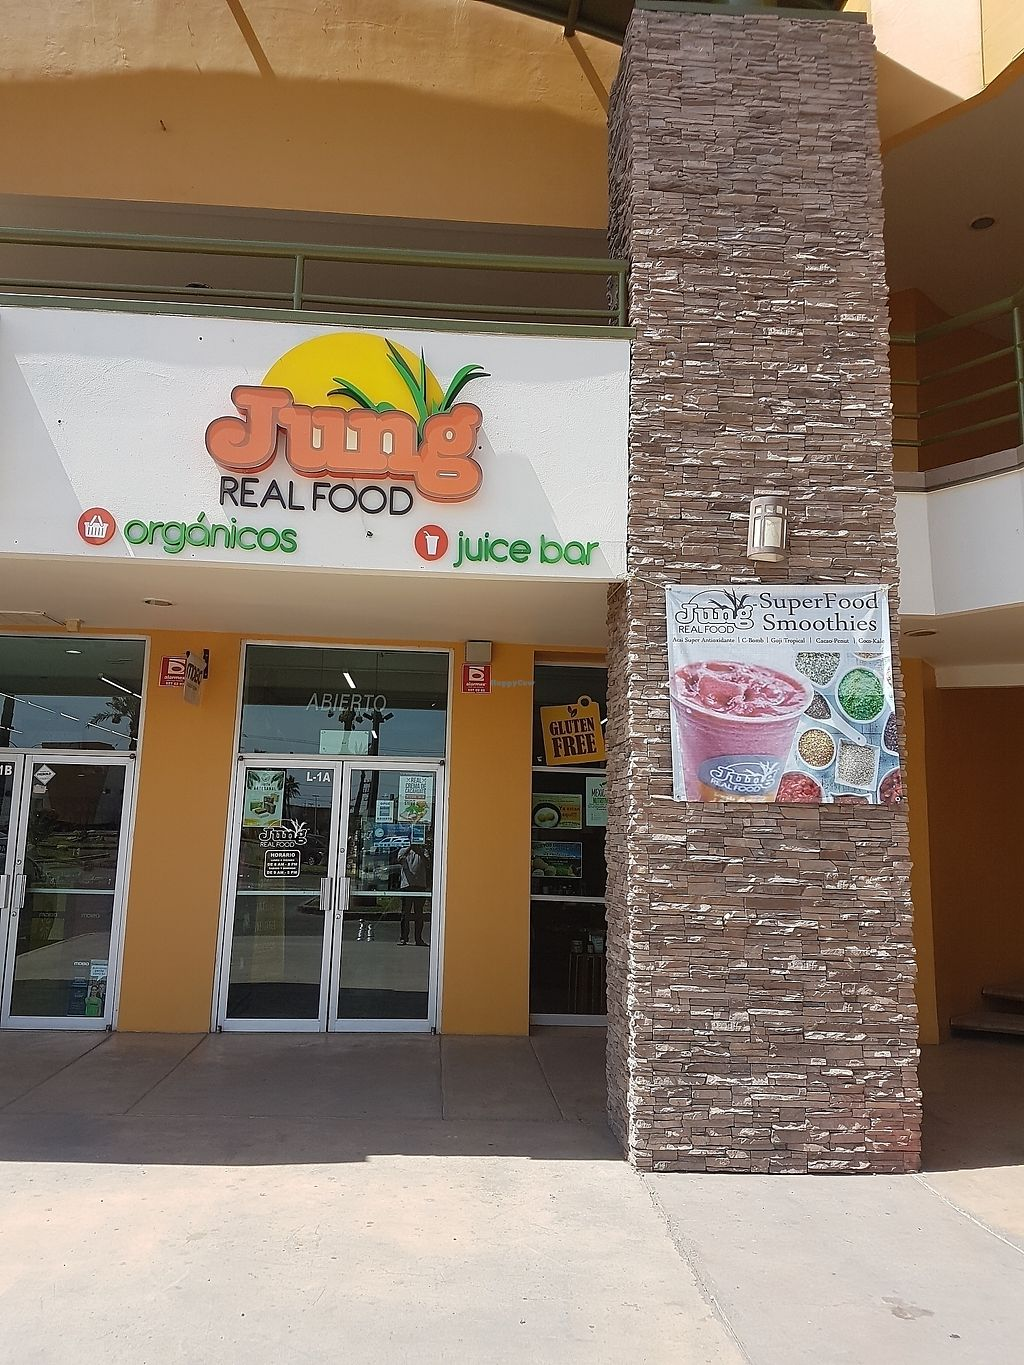 """Photo of Jung Real Food  by <a href=""""/members/profile/AlexValenzuela"""">AlexValenzuela</a> <br/>la puerta <br/> July 29, 2017  - <a href='/contact/abuse/image/87922/286045'>Report</a>"""